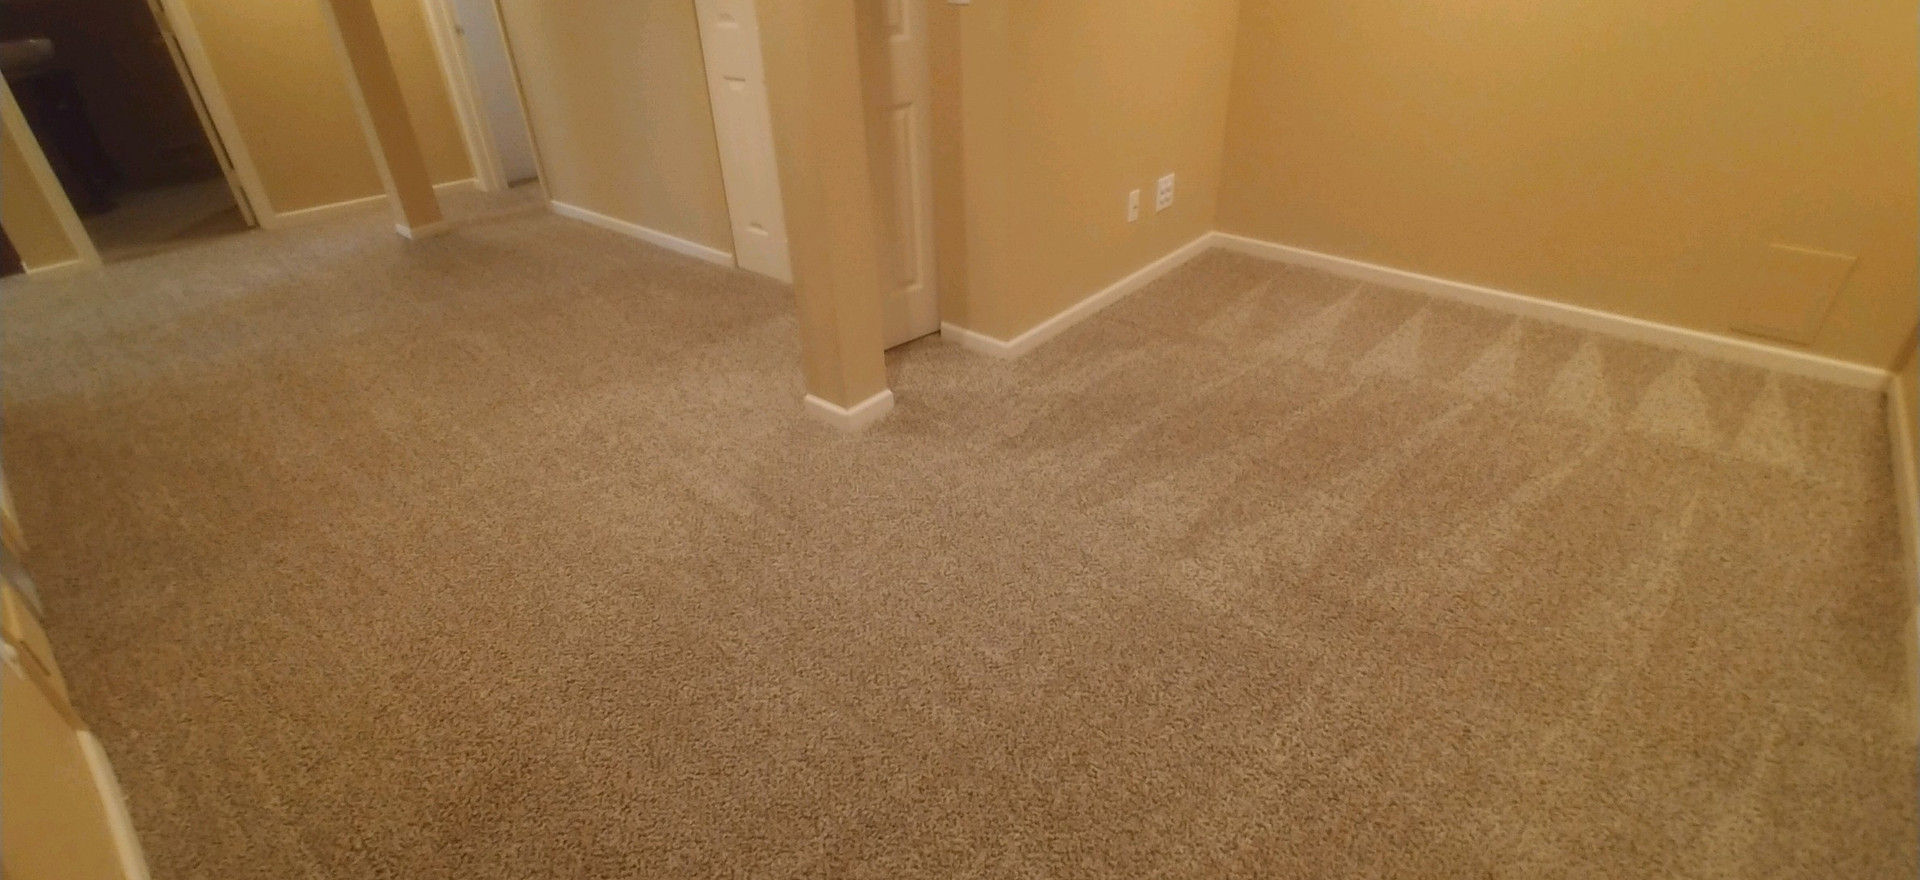 Carpet Cleaning In West Bloomfield Michigan